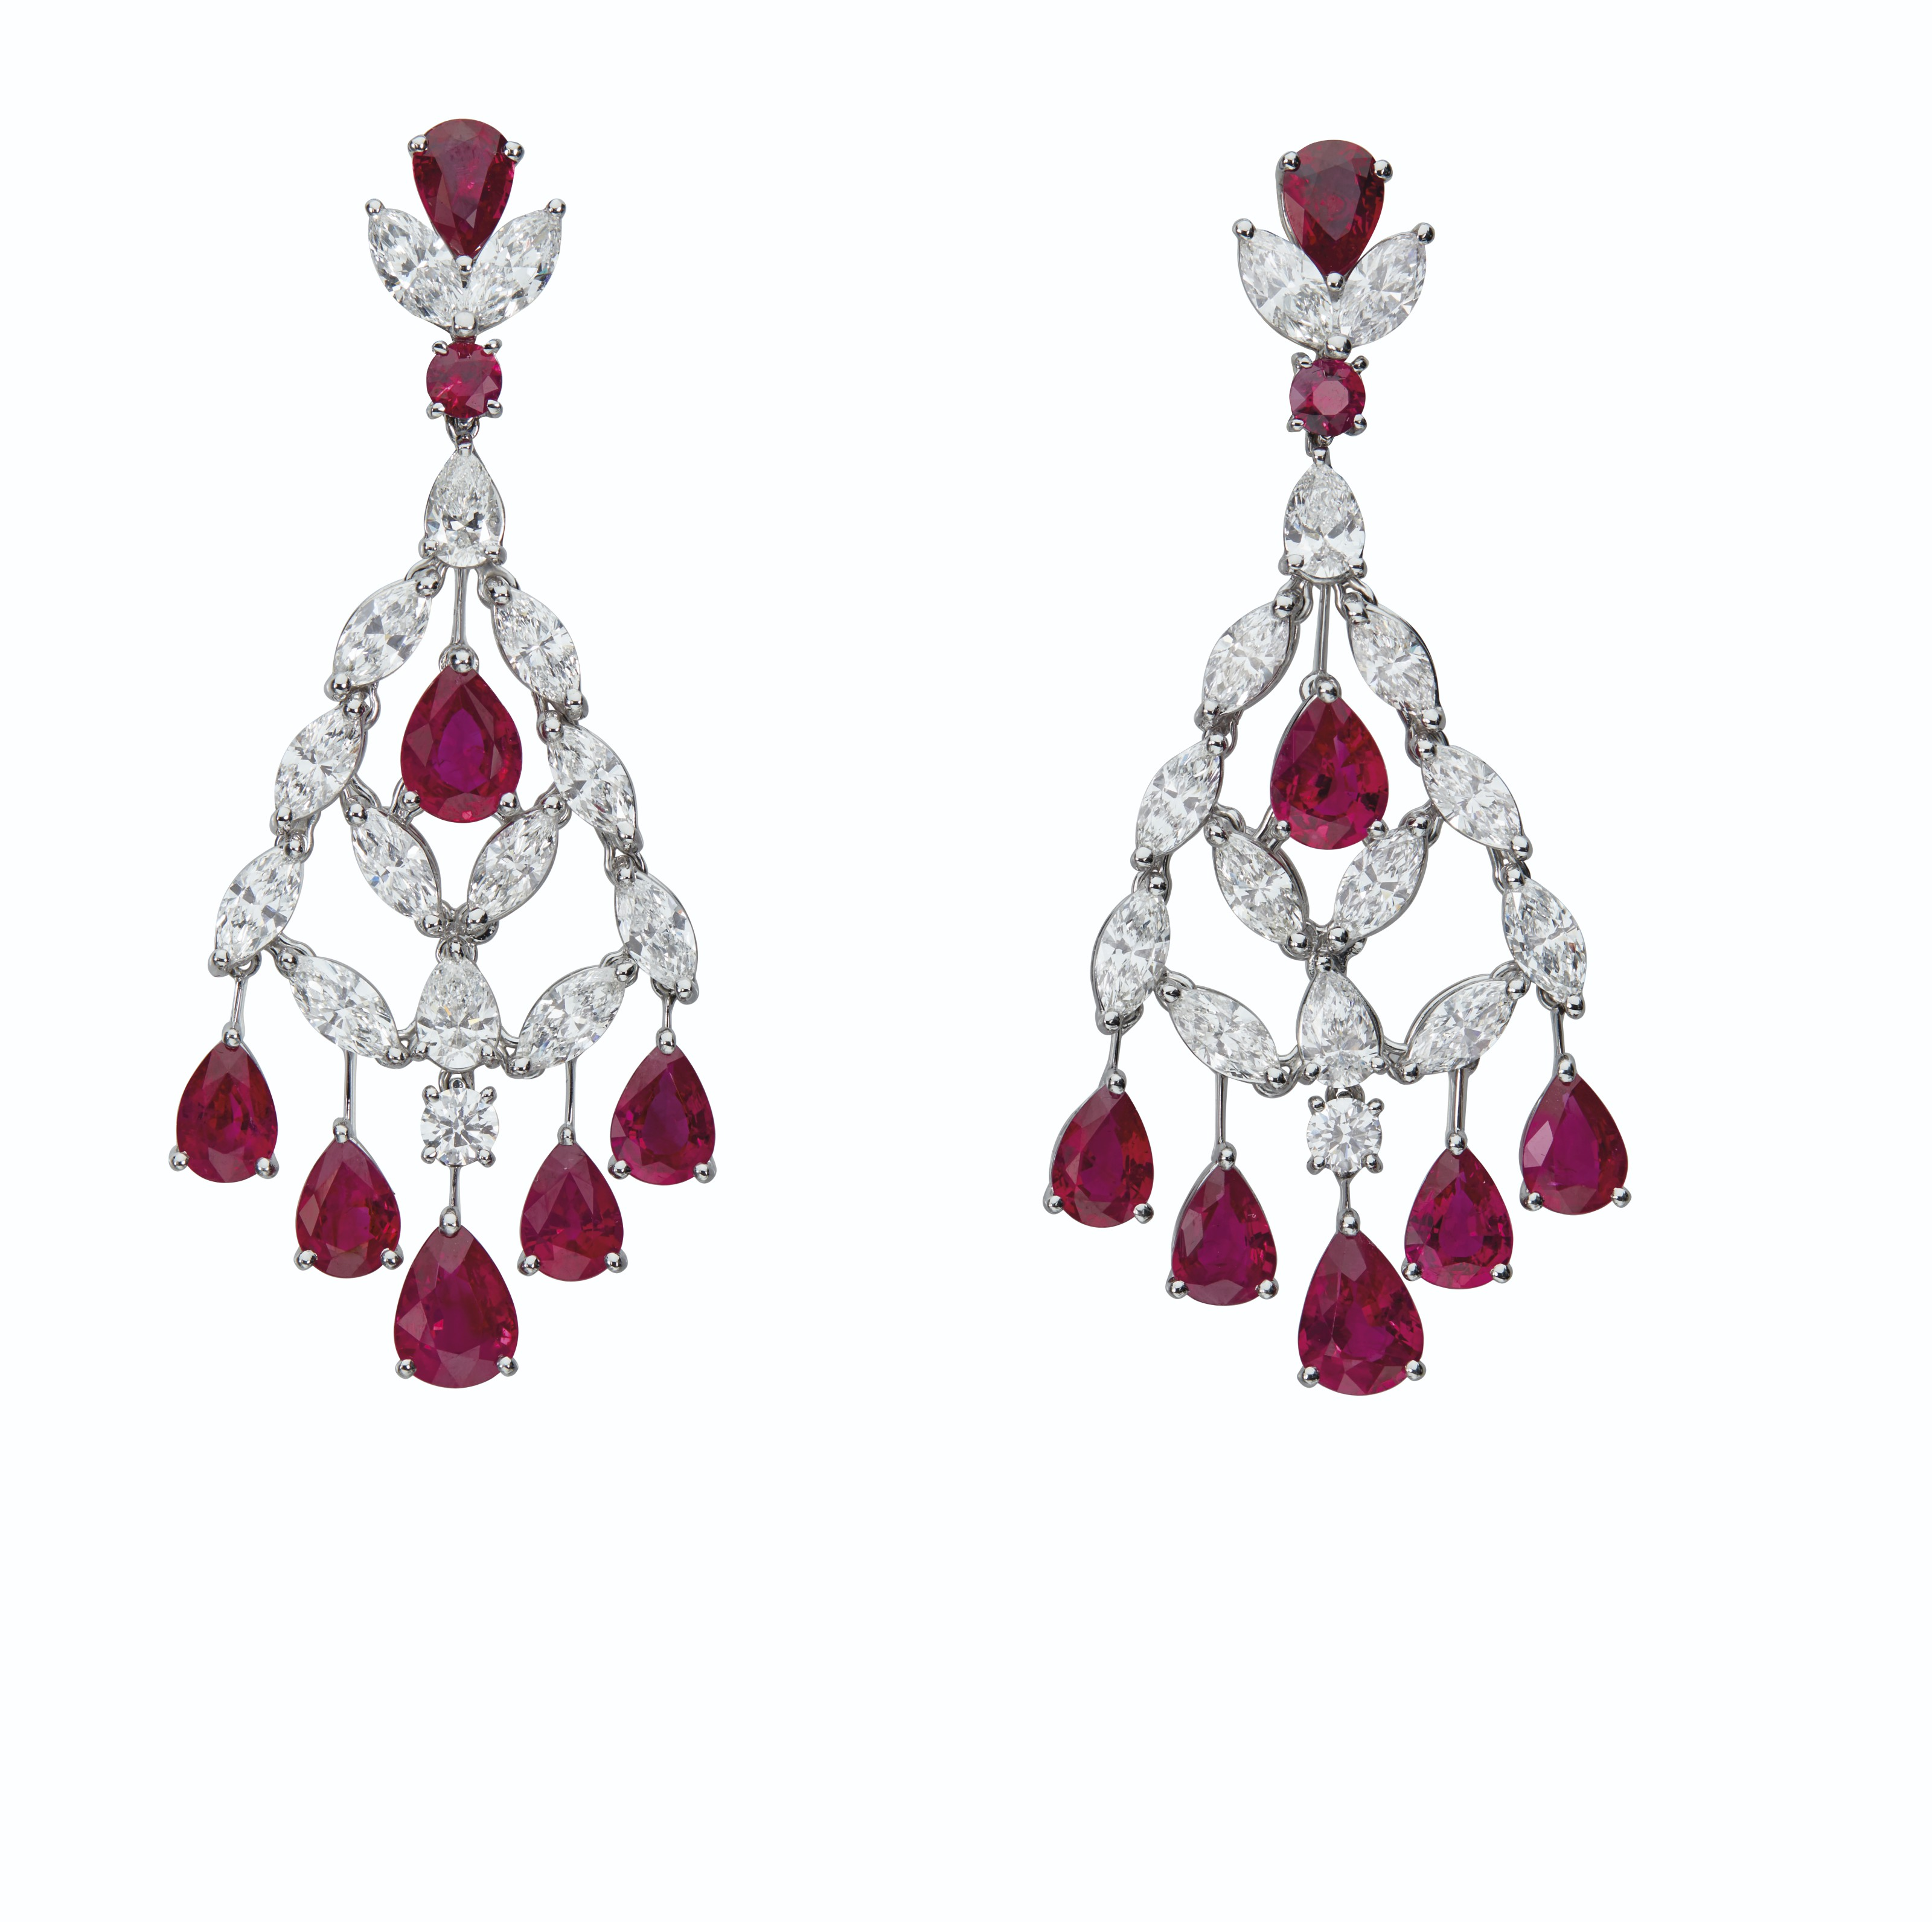 RUBY AND DIAMOND EARRINGS, GRAFF